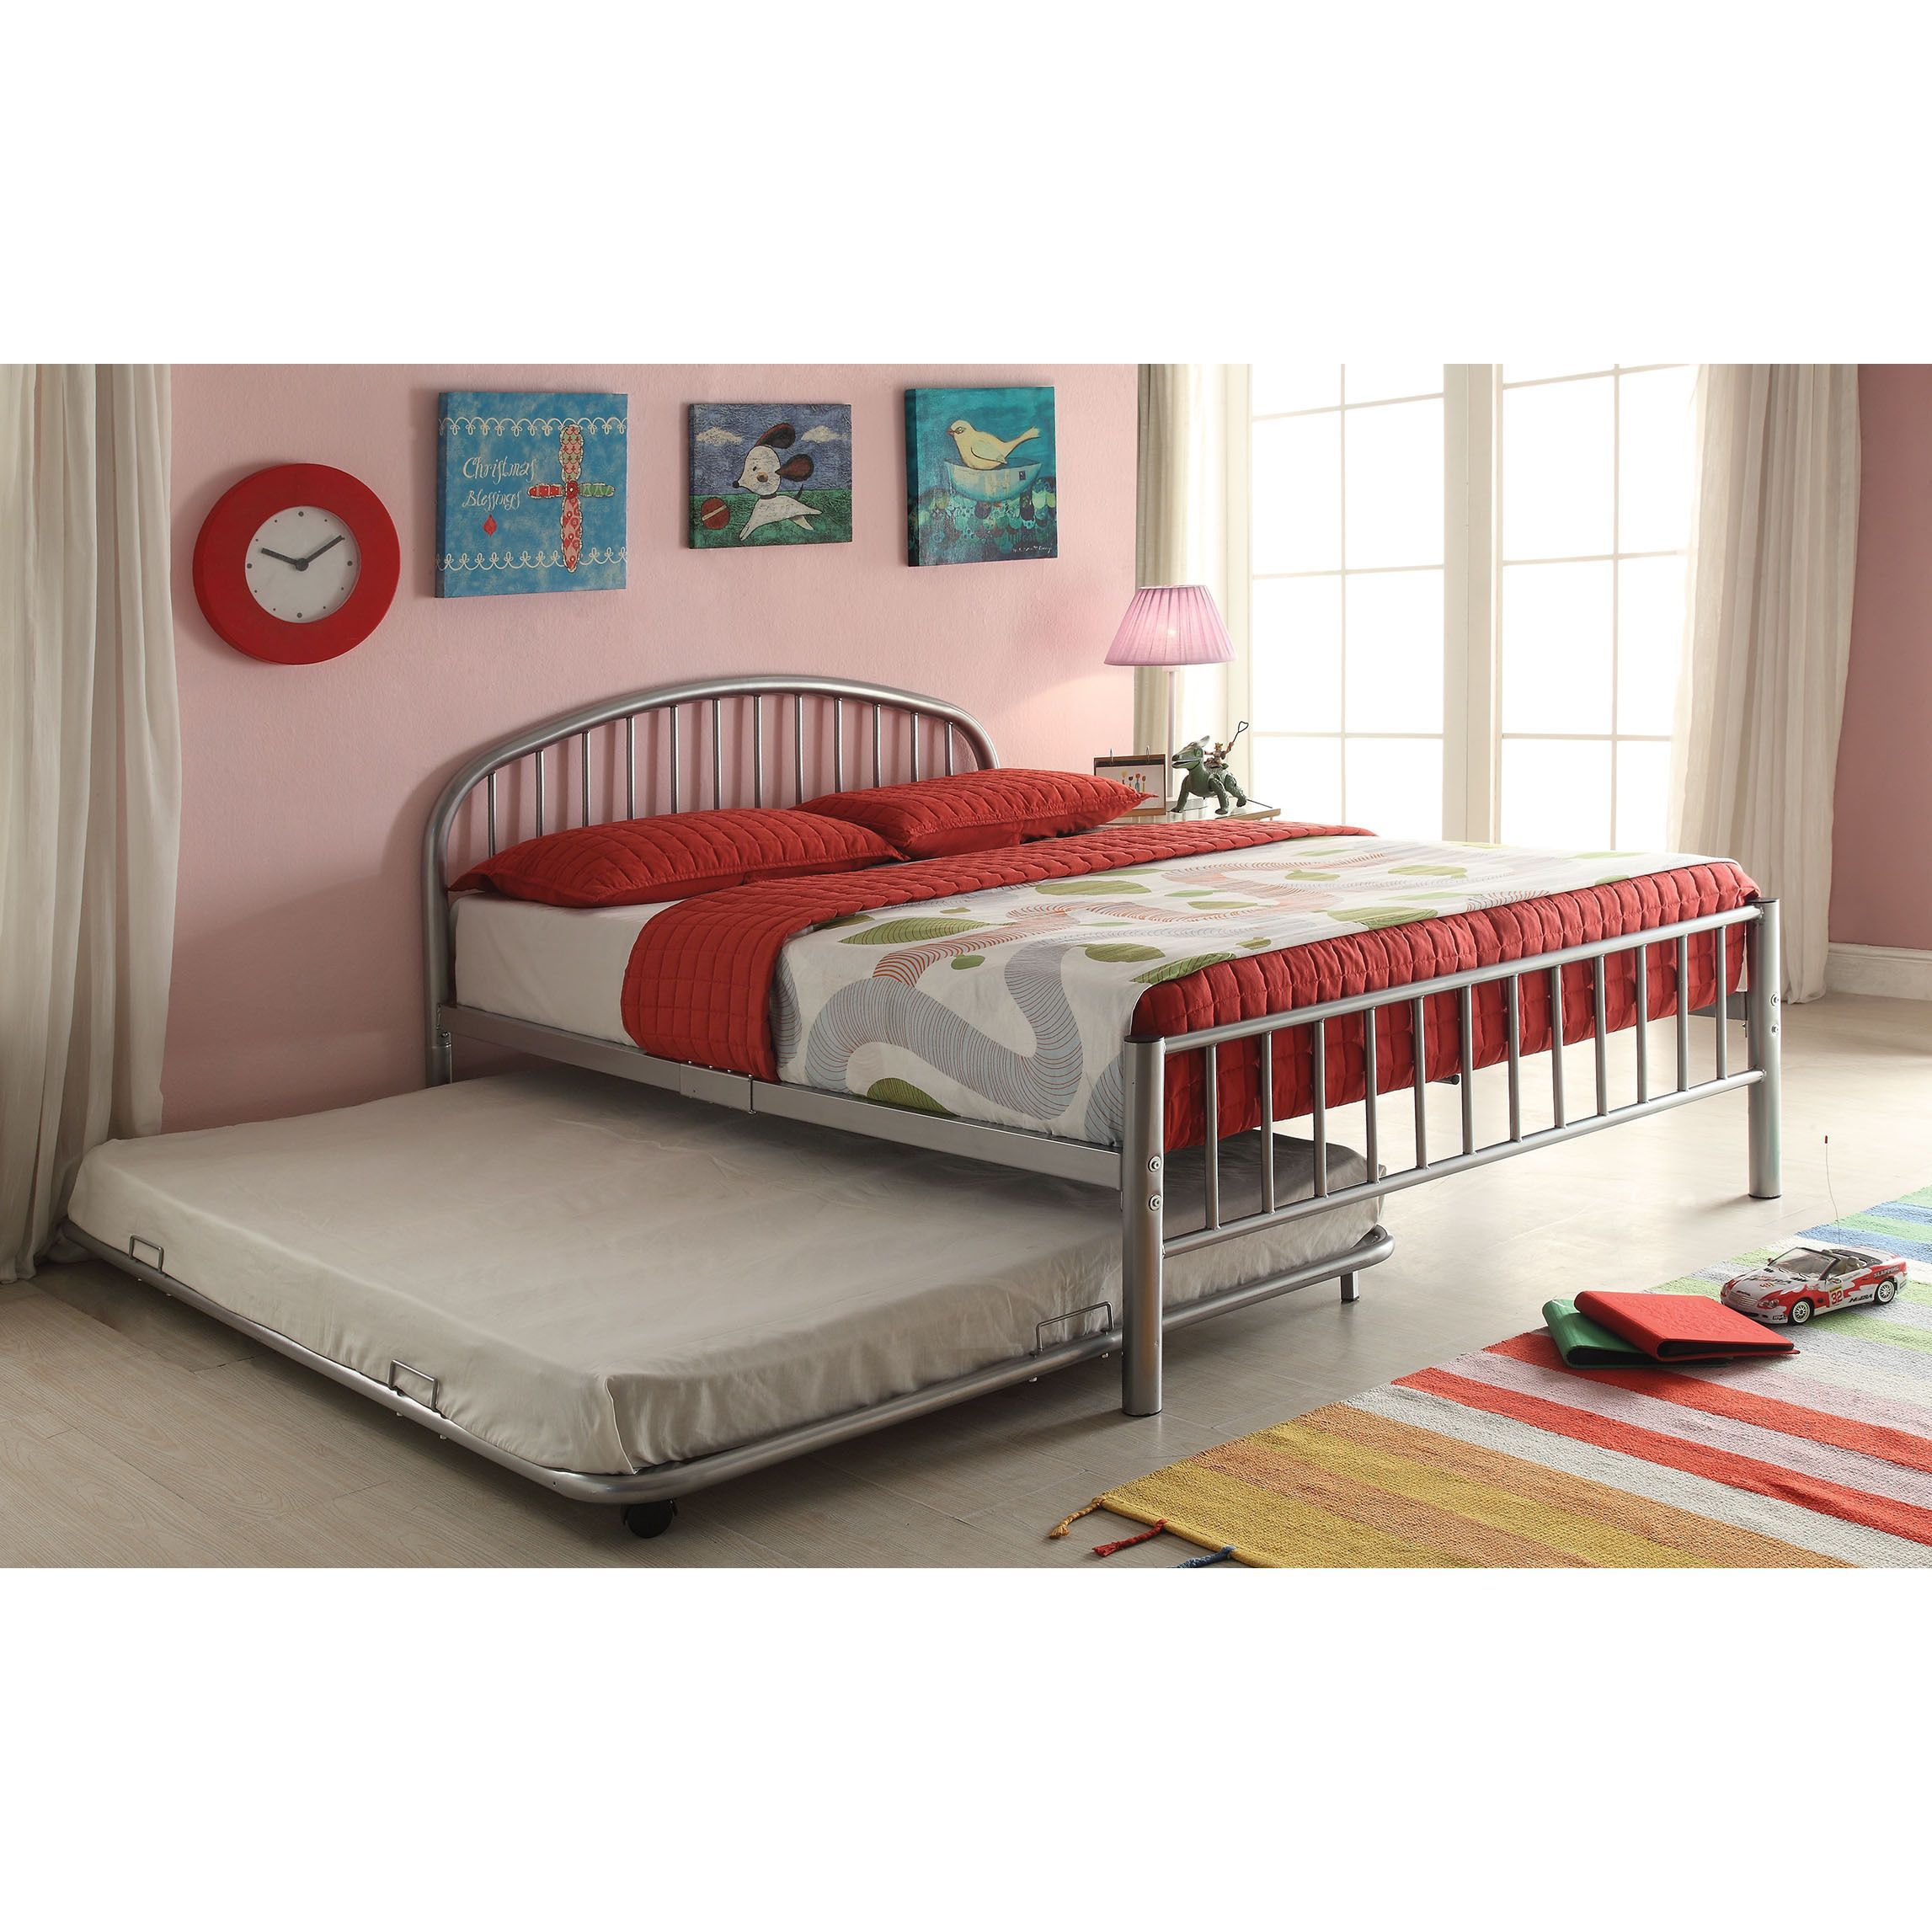 new styles cba74 38d7d Acme Cailyn Silver Metal Full Size Trundle Bed (Silver, 73L ...